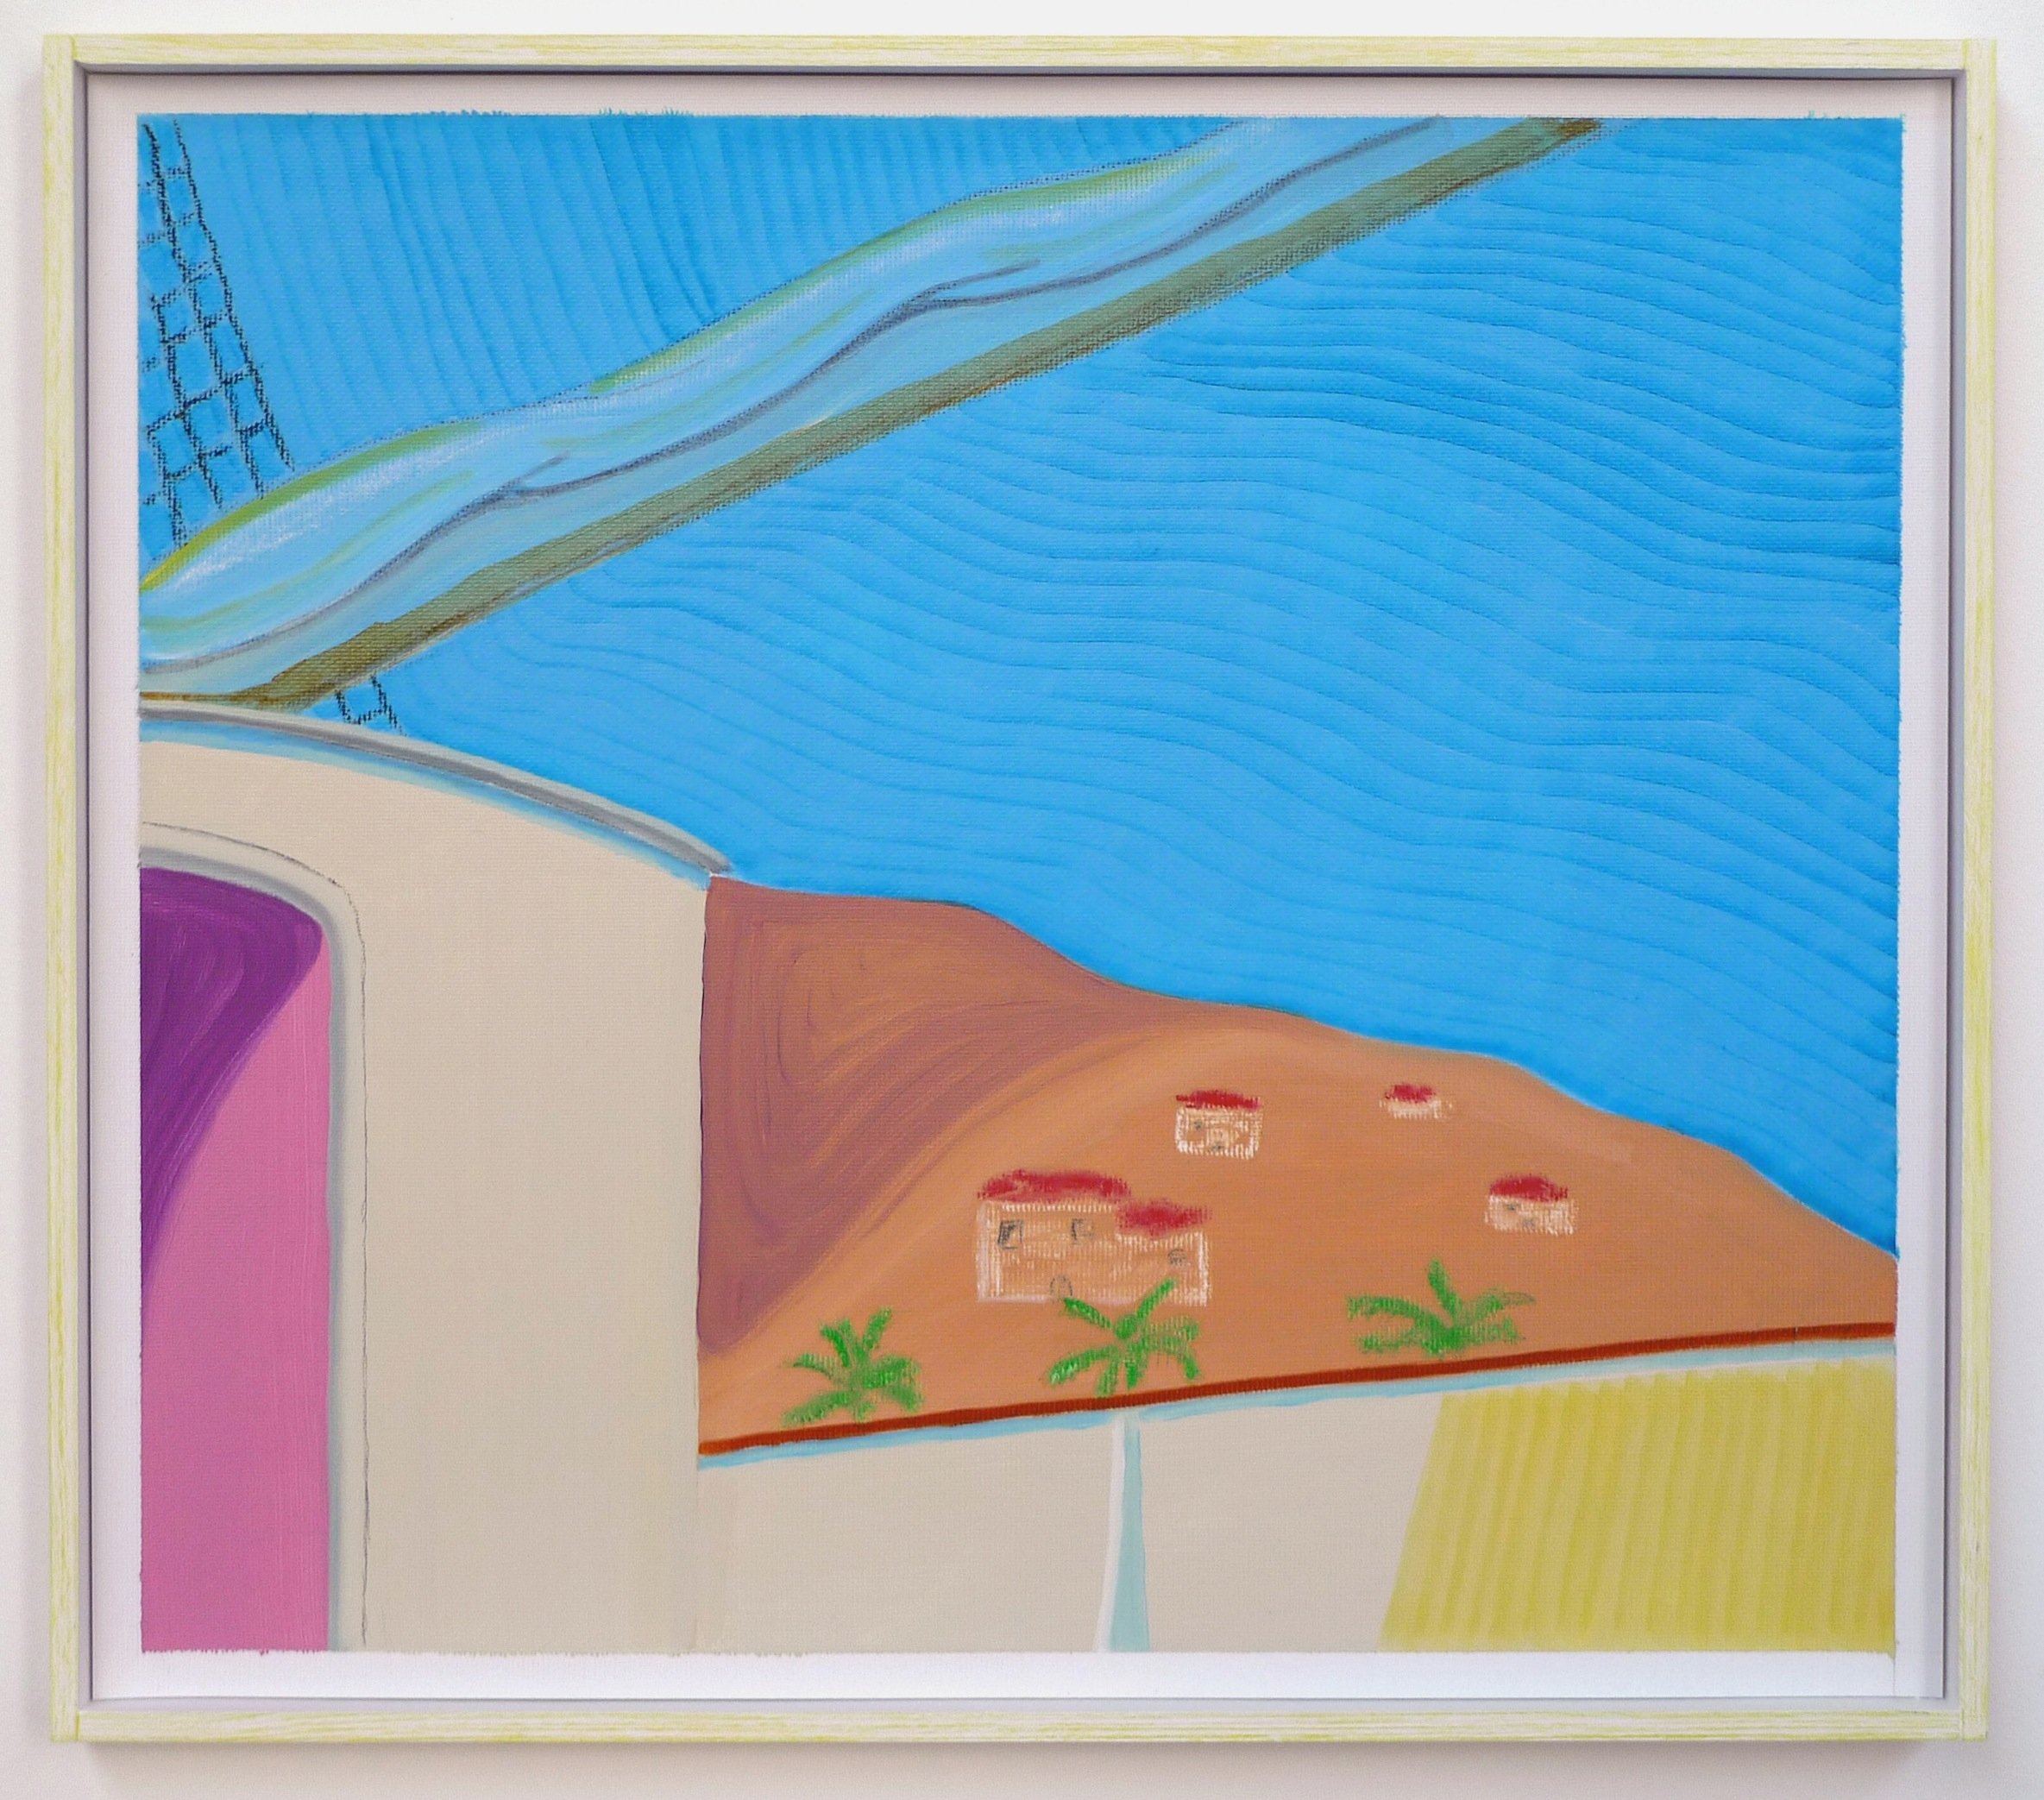 Near Land  2012 Oil and oil pastel on paper in artist's frame, 31.5 x 35 cm  Private Collection